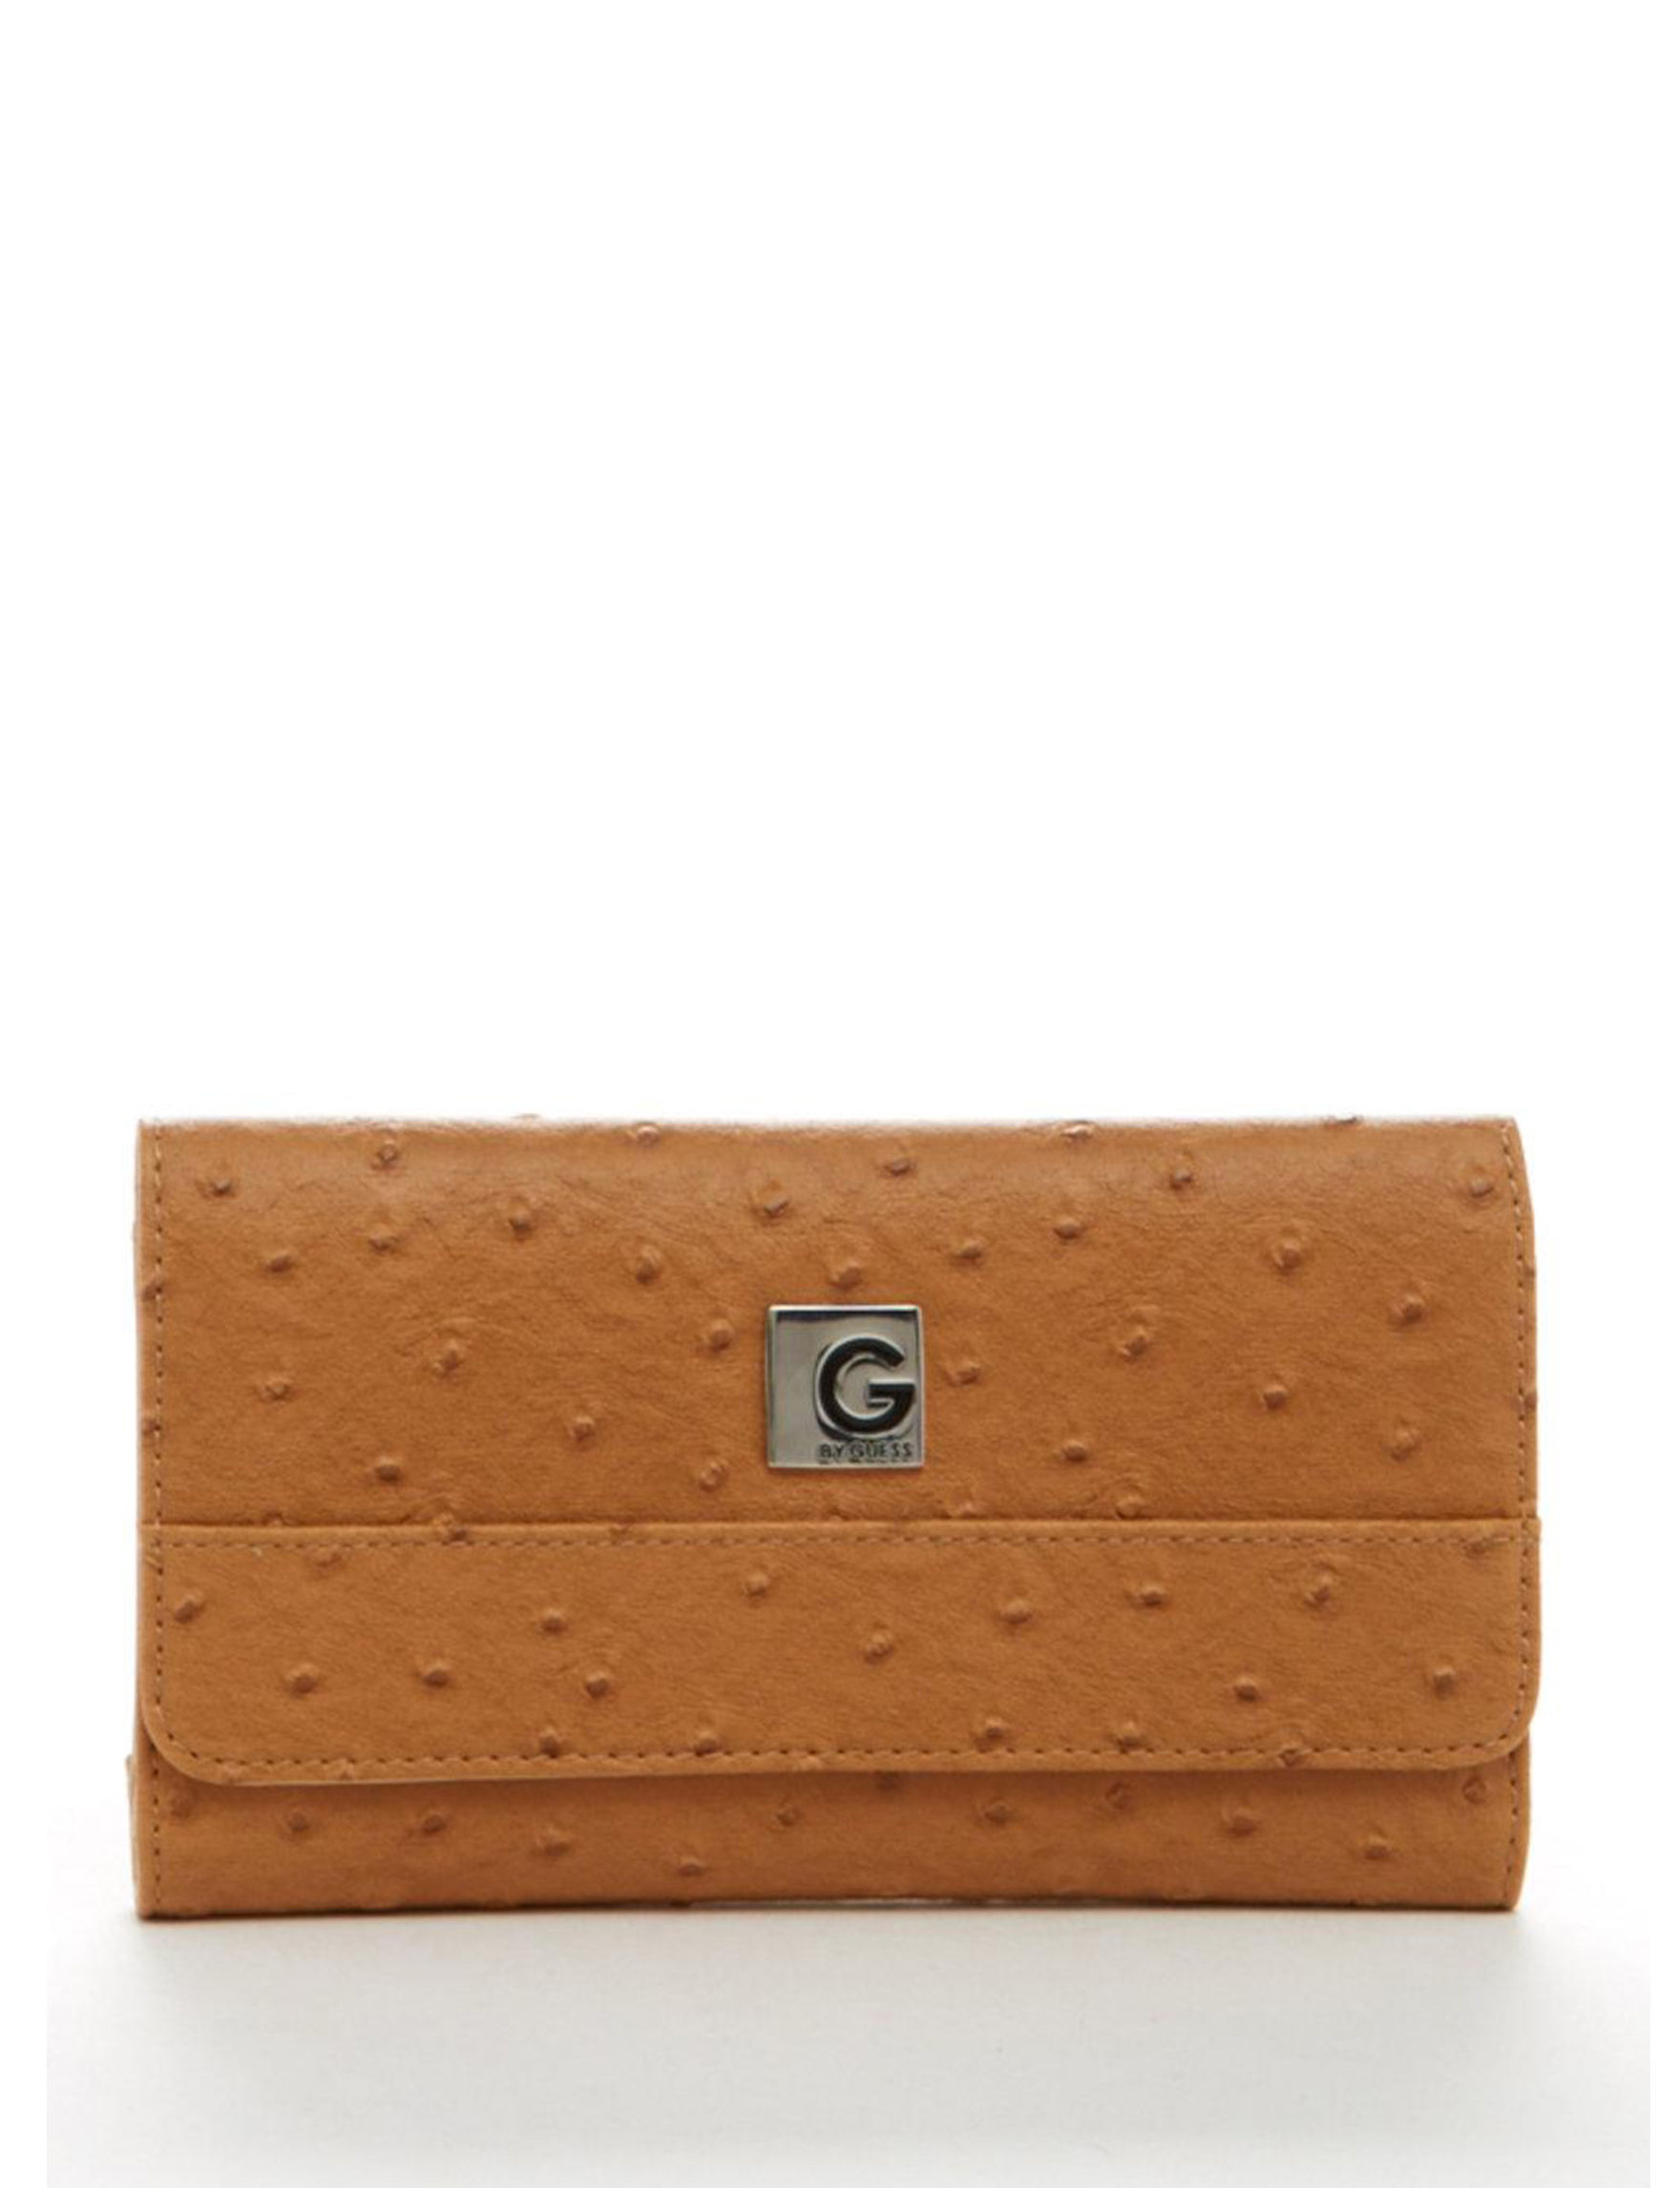 G by Guess Cognac